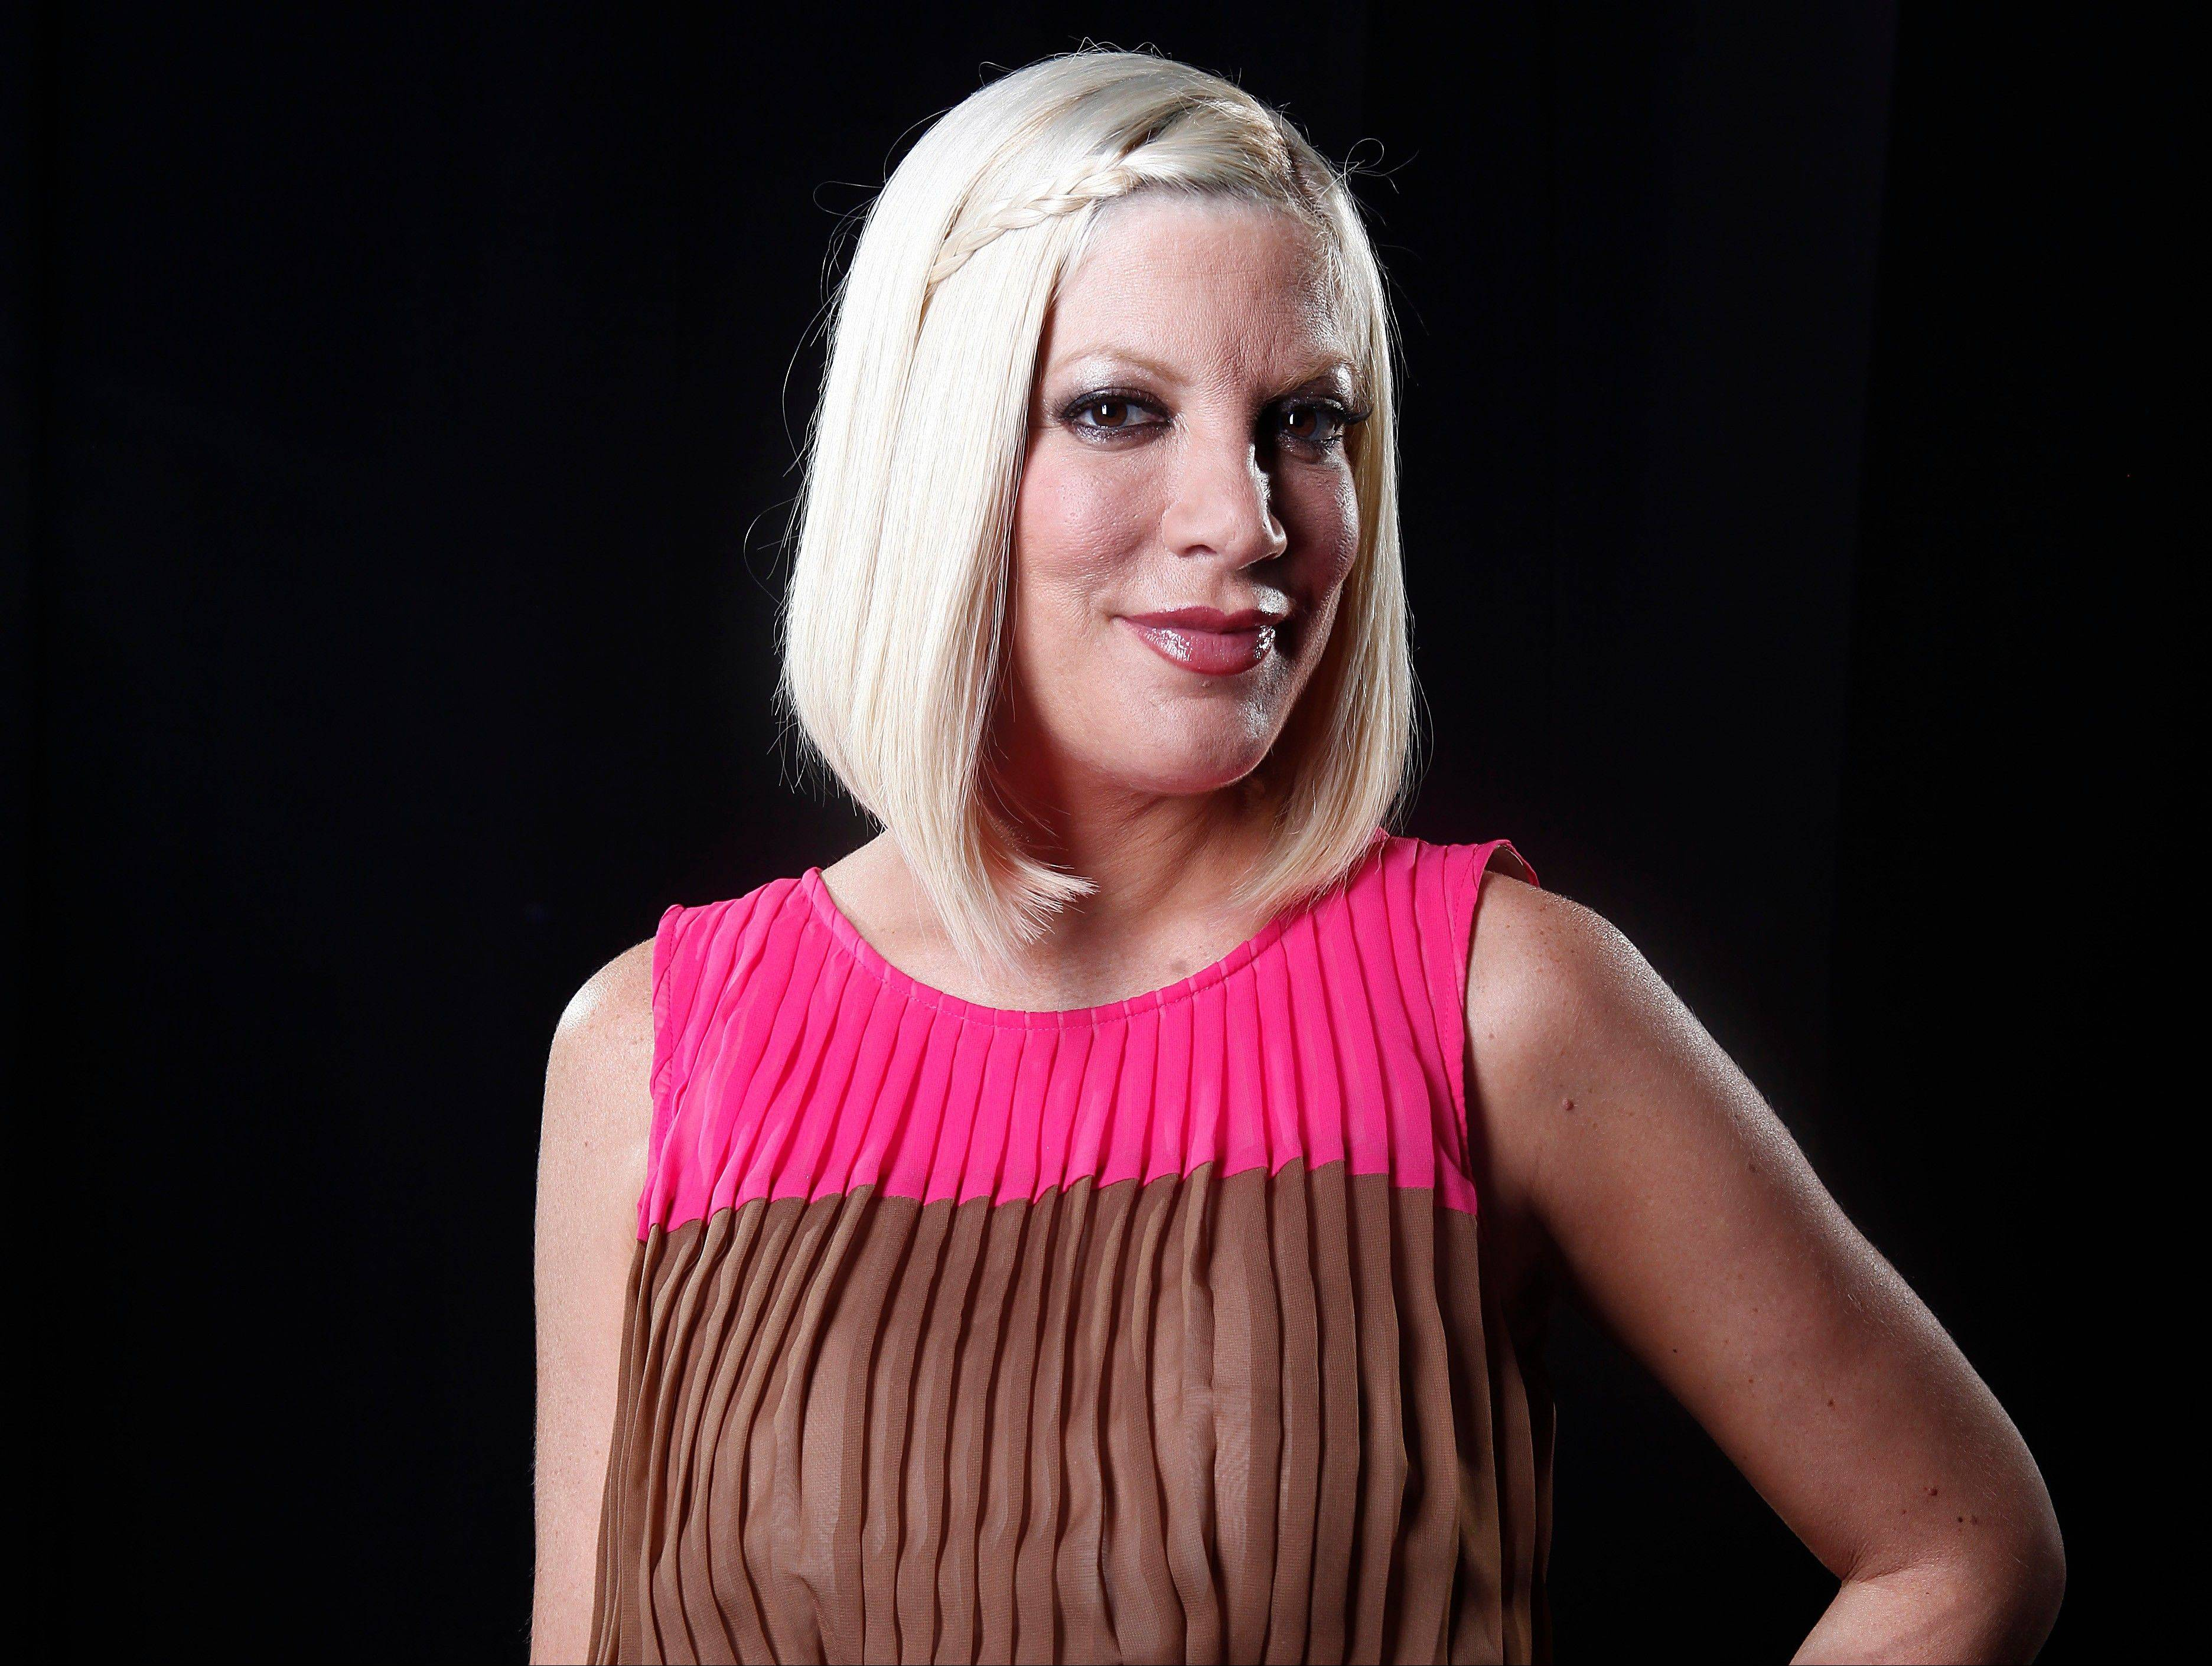 Actress Tori Spelling has given birth to her fourth child, a son named Finn, on Thursday.